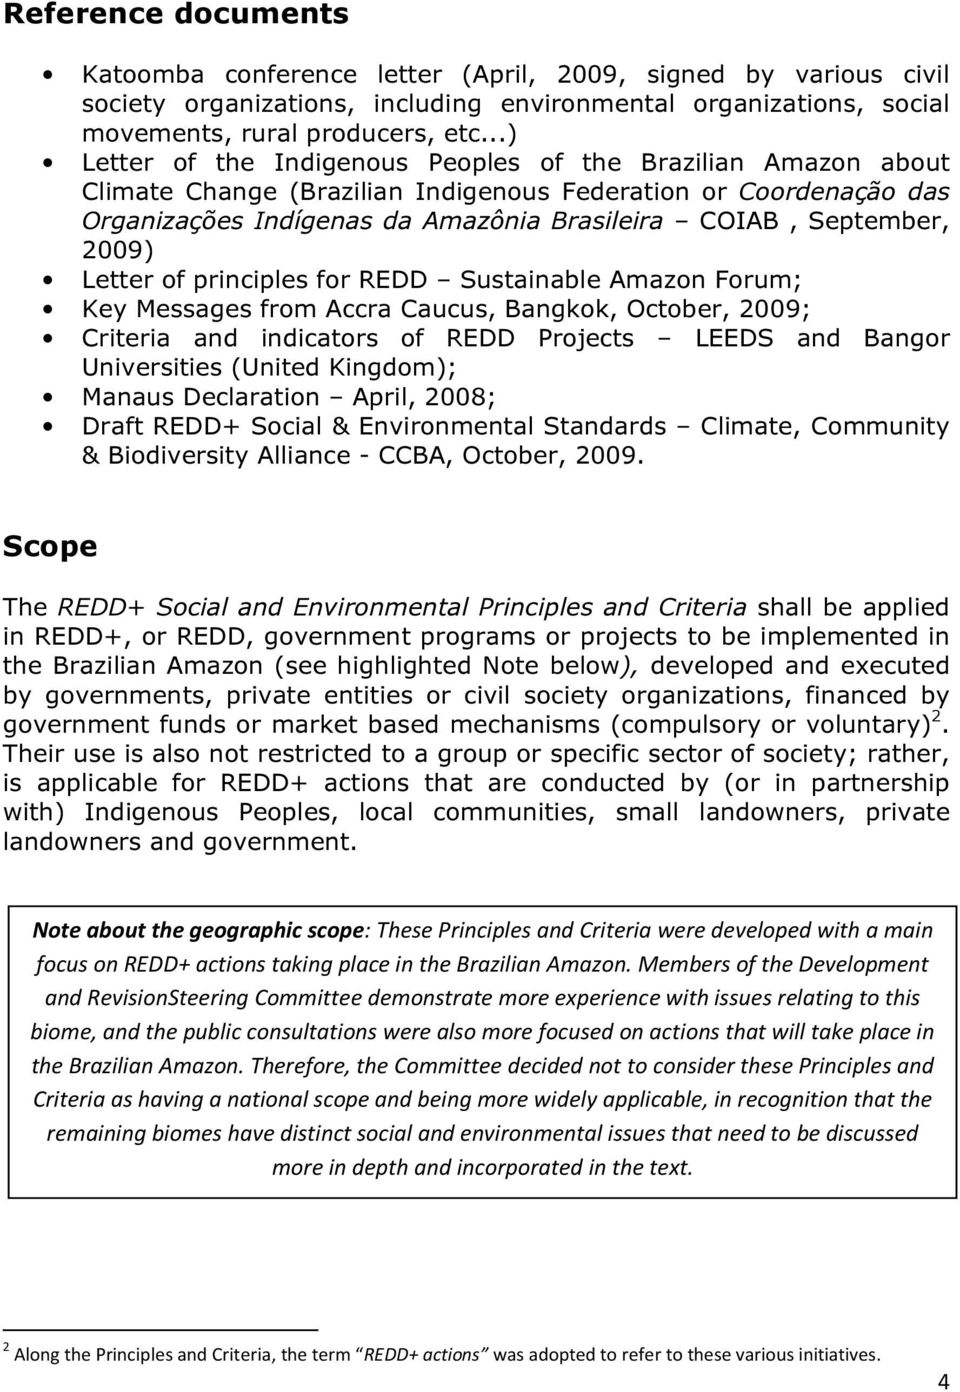 2009) Letter of principles for REDD Sustainable Amazon Forum; Key Messages from Accra Caucus, Bangkok, October, 2009; Criteria and indicators of REDD Projects LEEDS and Bangor Universities (United